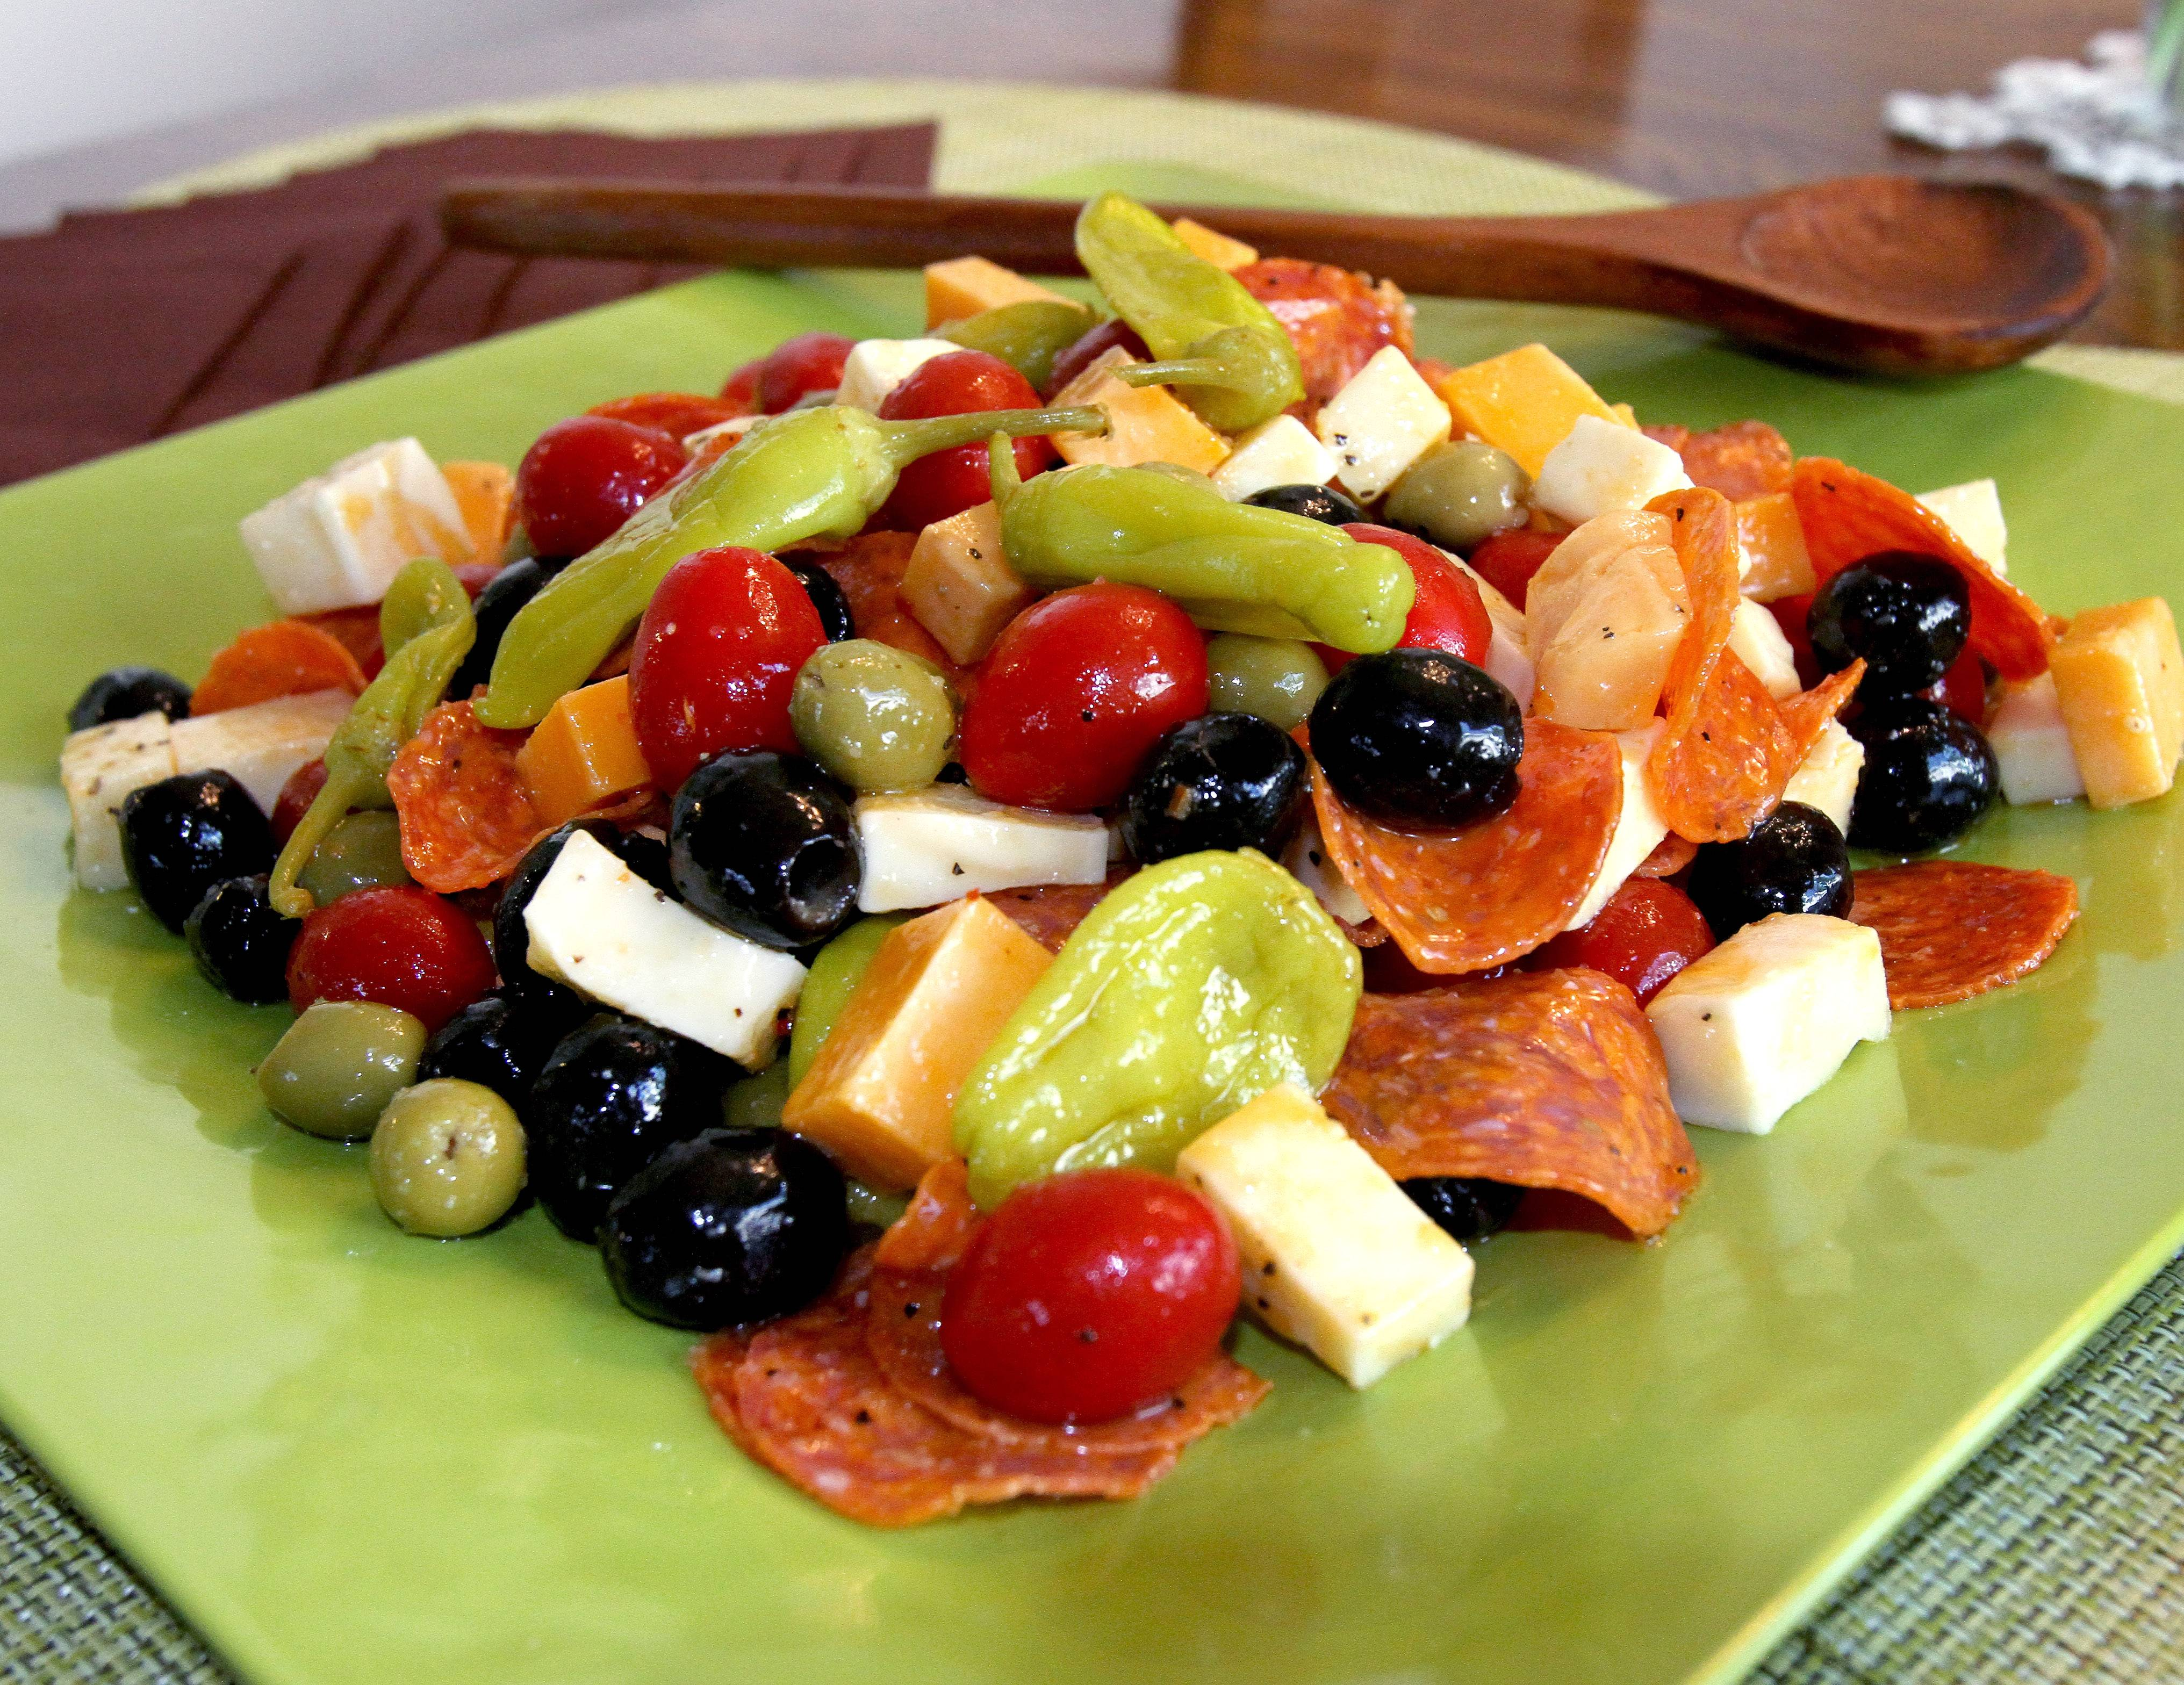 Black olives and cheese mingle with spicy peppers in Judy Monaco's Antipasto Salad